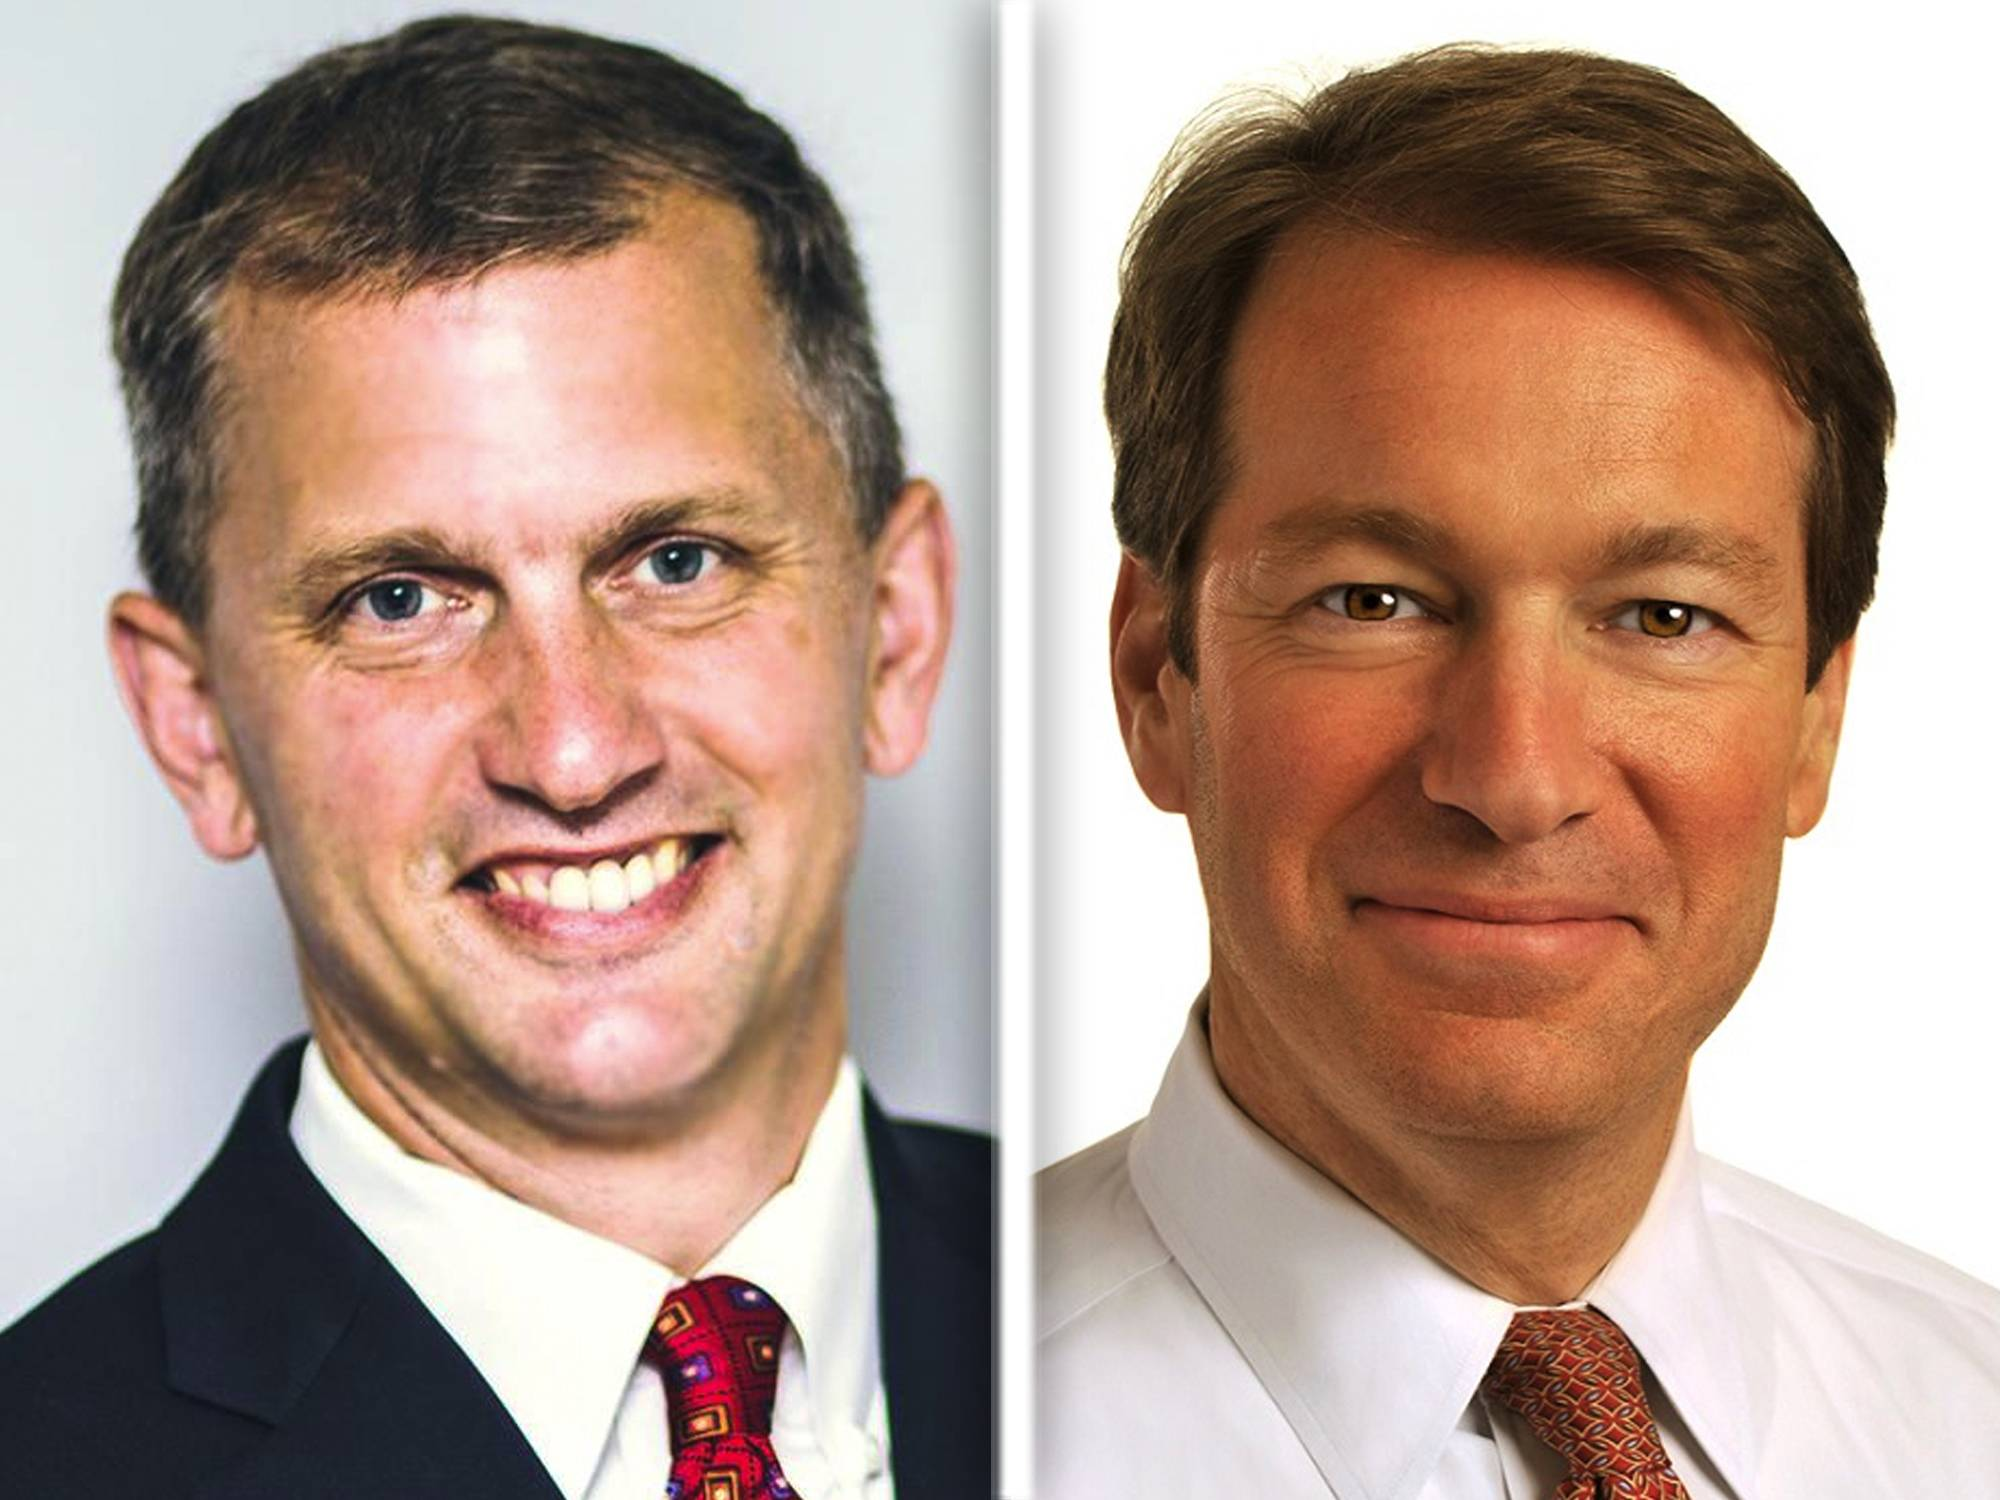 Democrat Sean Casten, left, and Republican incumbent Peter Roskam are candidates for the Illinois' 6th Congressional District seat.